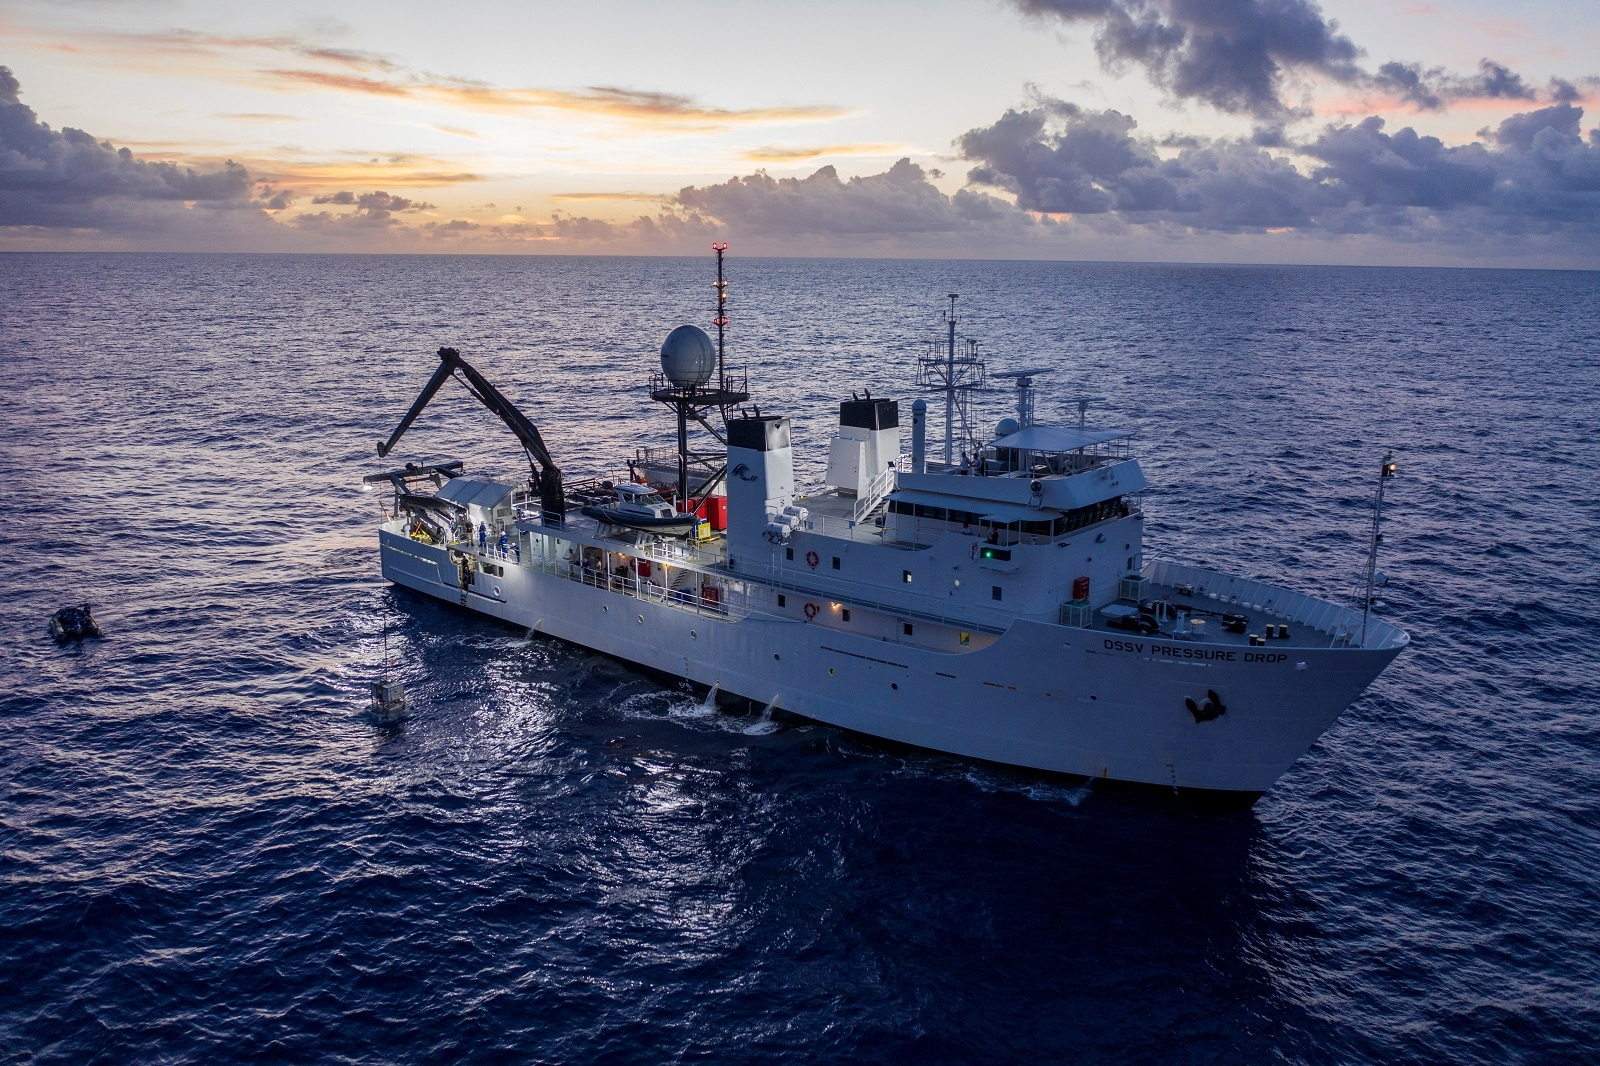 The submarine DSV Limiting Factor is tethered to a crane from the research vessel DSSV Pressure Drop above the Pacific Ocean's Mariana Trench in an undated photo released by the Discovery Channel May 13, 2019. Atlantic Productions for Discovery Channel/Tamara Stubbs/Handout via REUTERS.